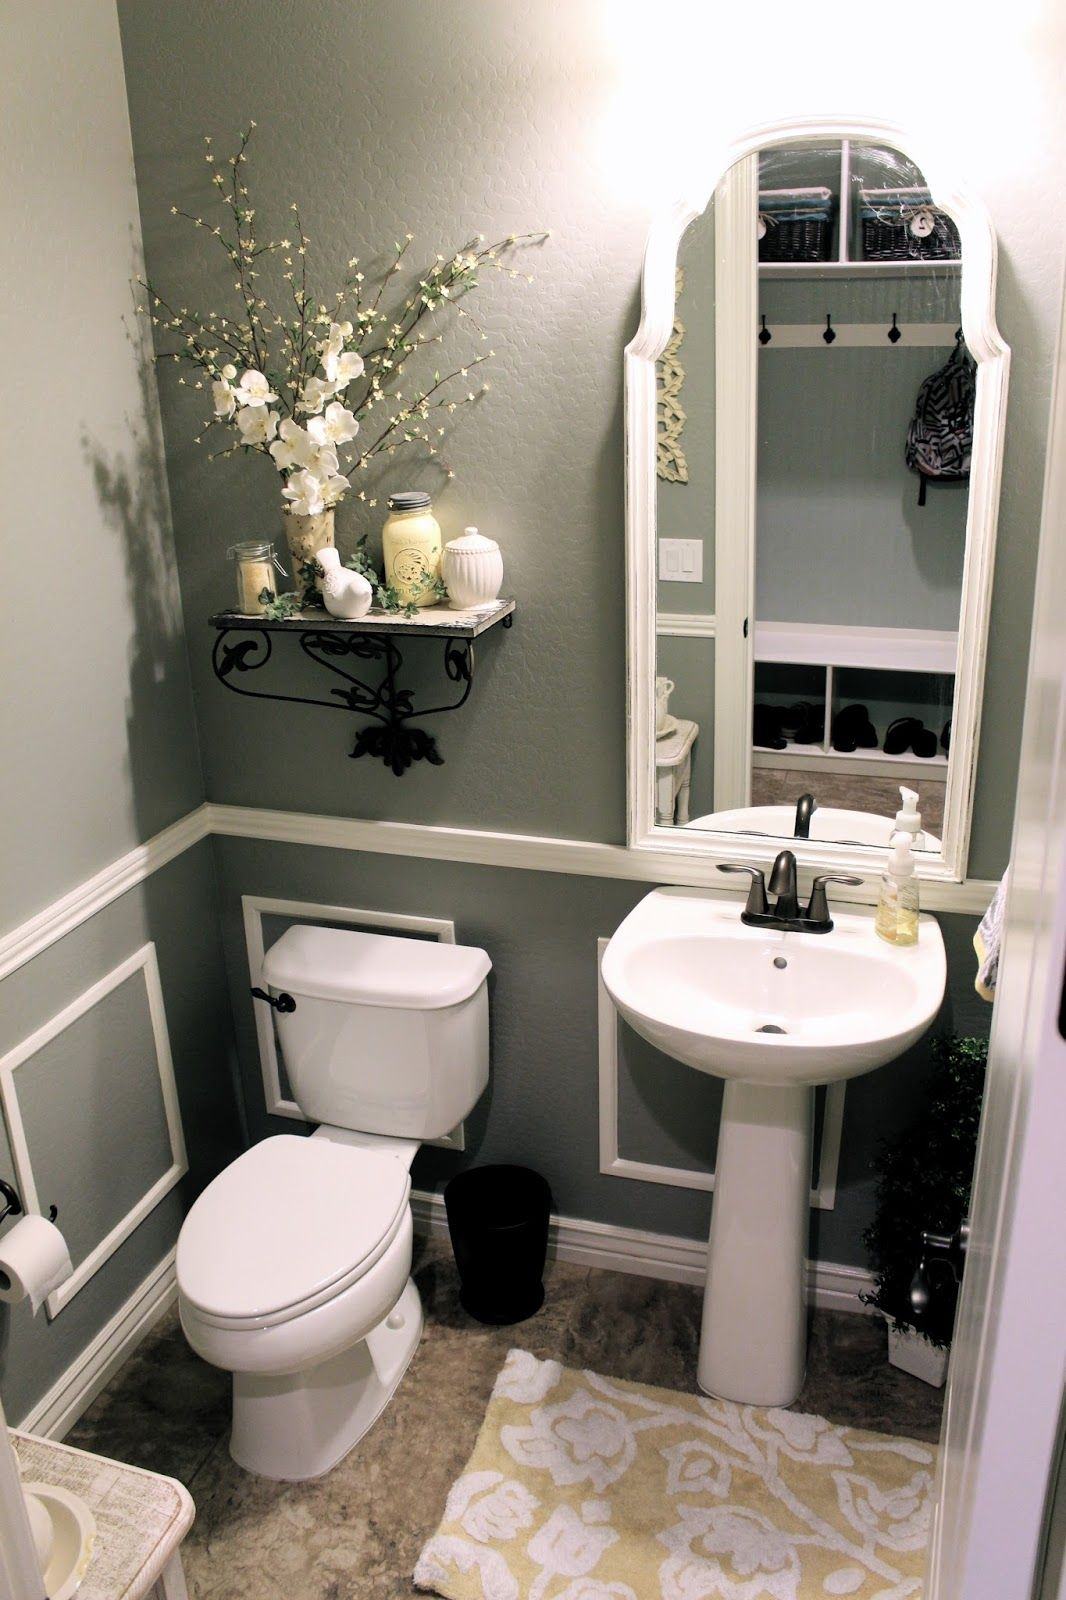 Bathroom Decor Ideas On A Budget paint color valspar wet cement. love all of this except the